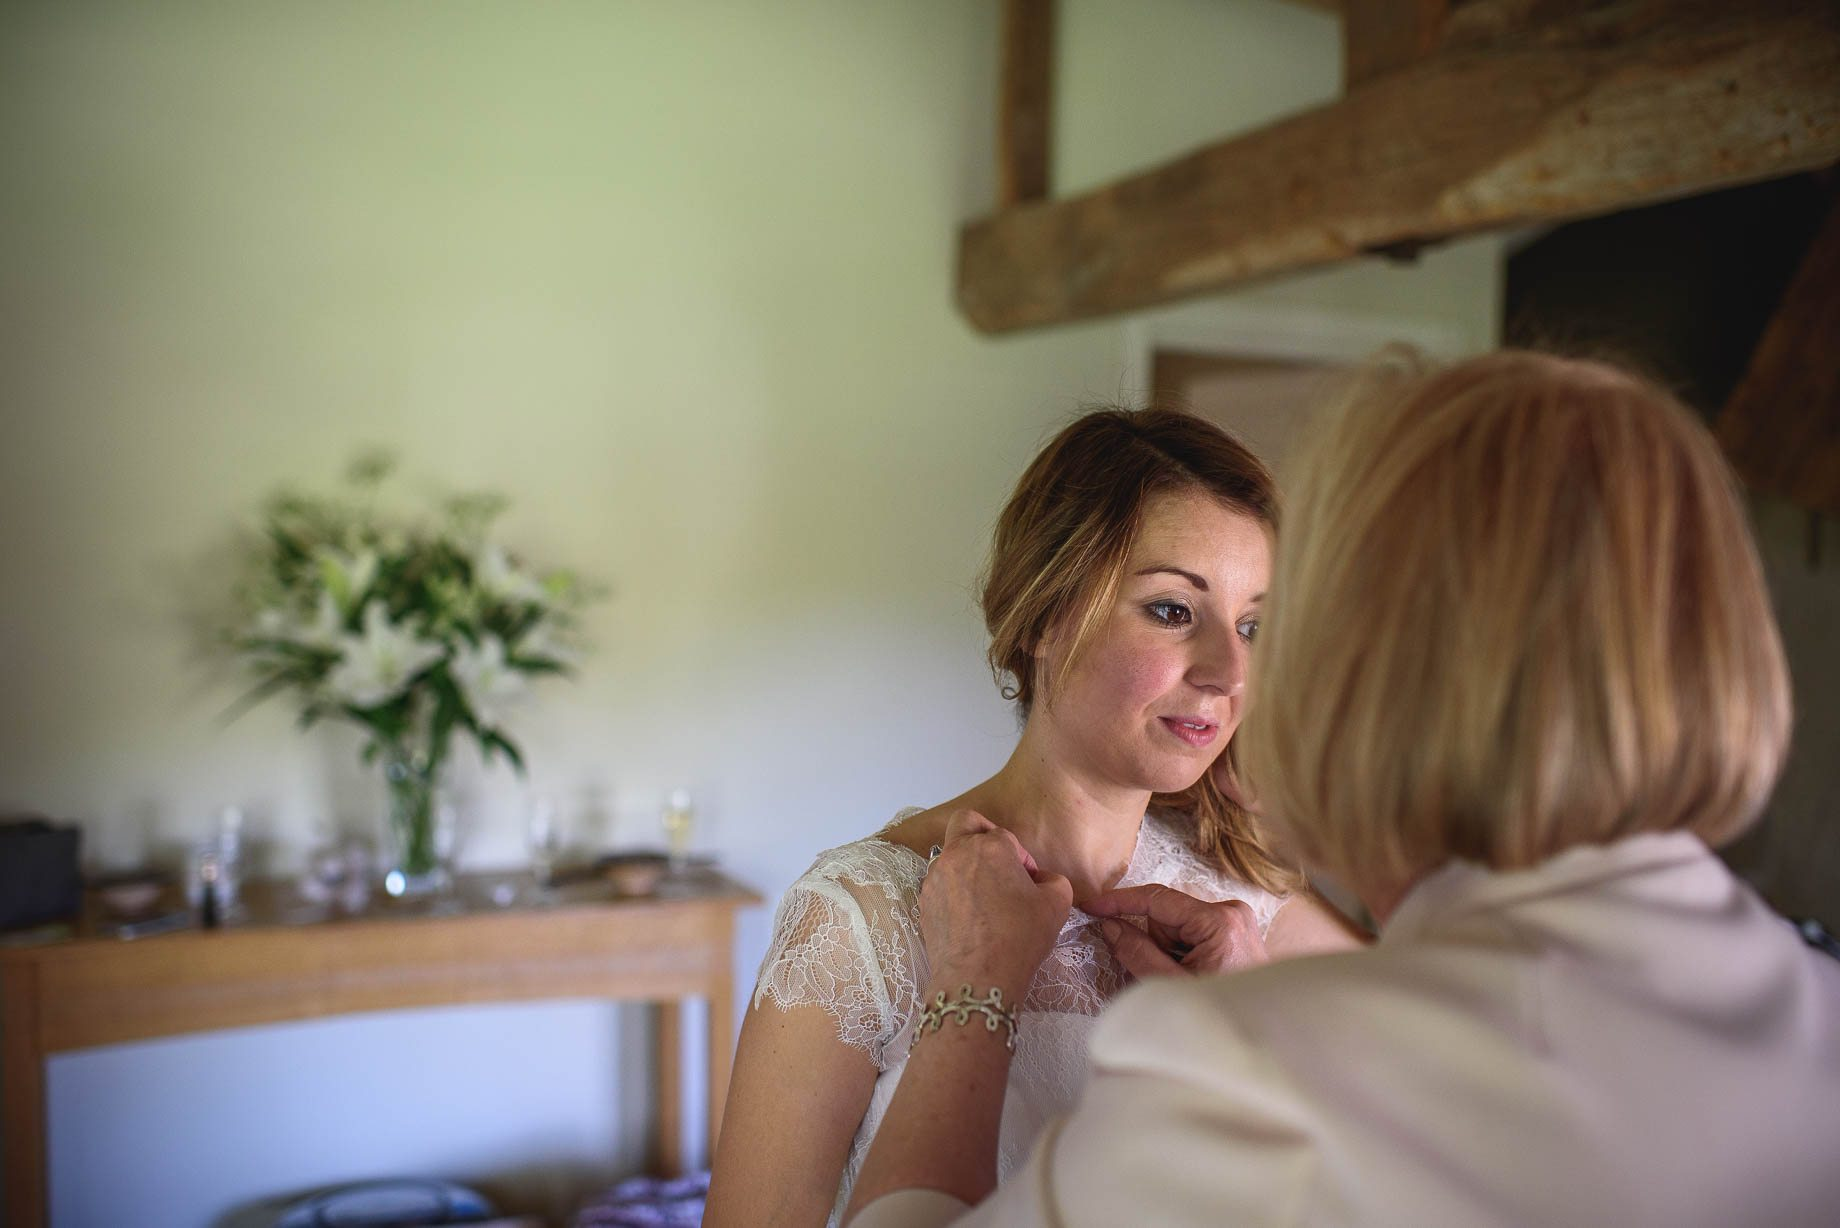 Bury Court Barn wedding photography by Guy Collier - Jo and Jamie (39 of 160)